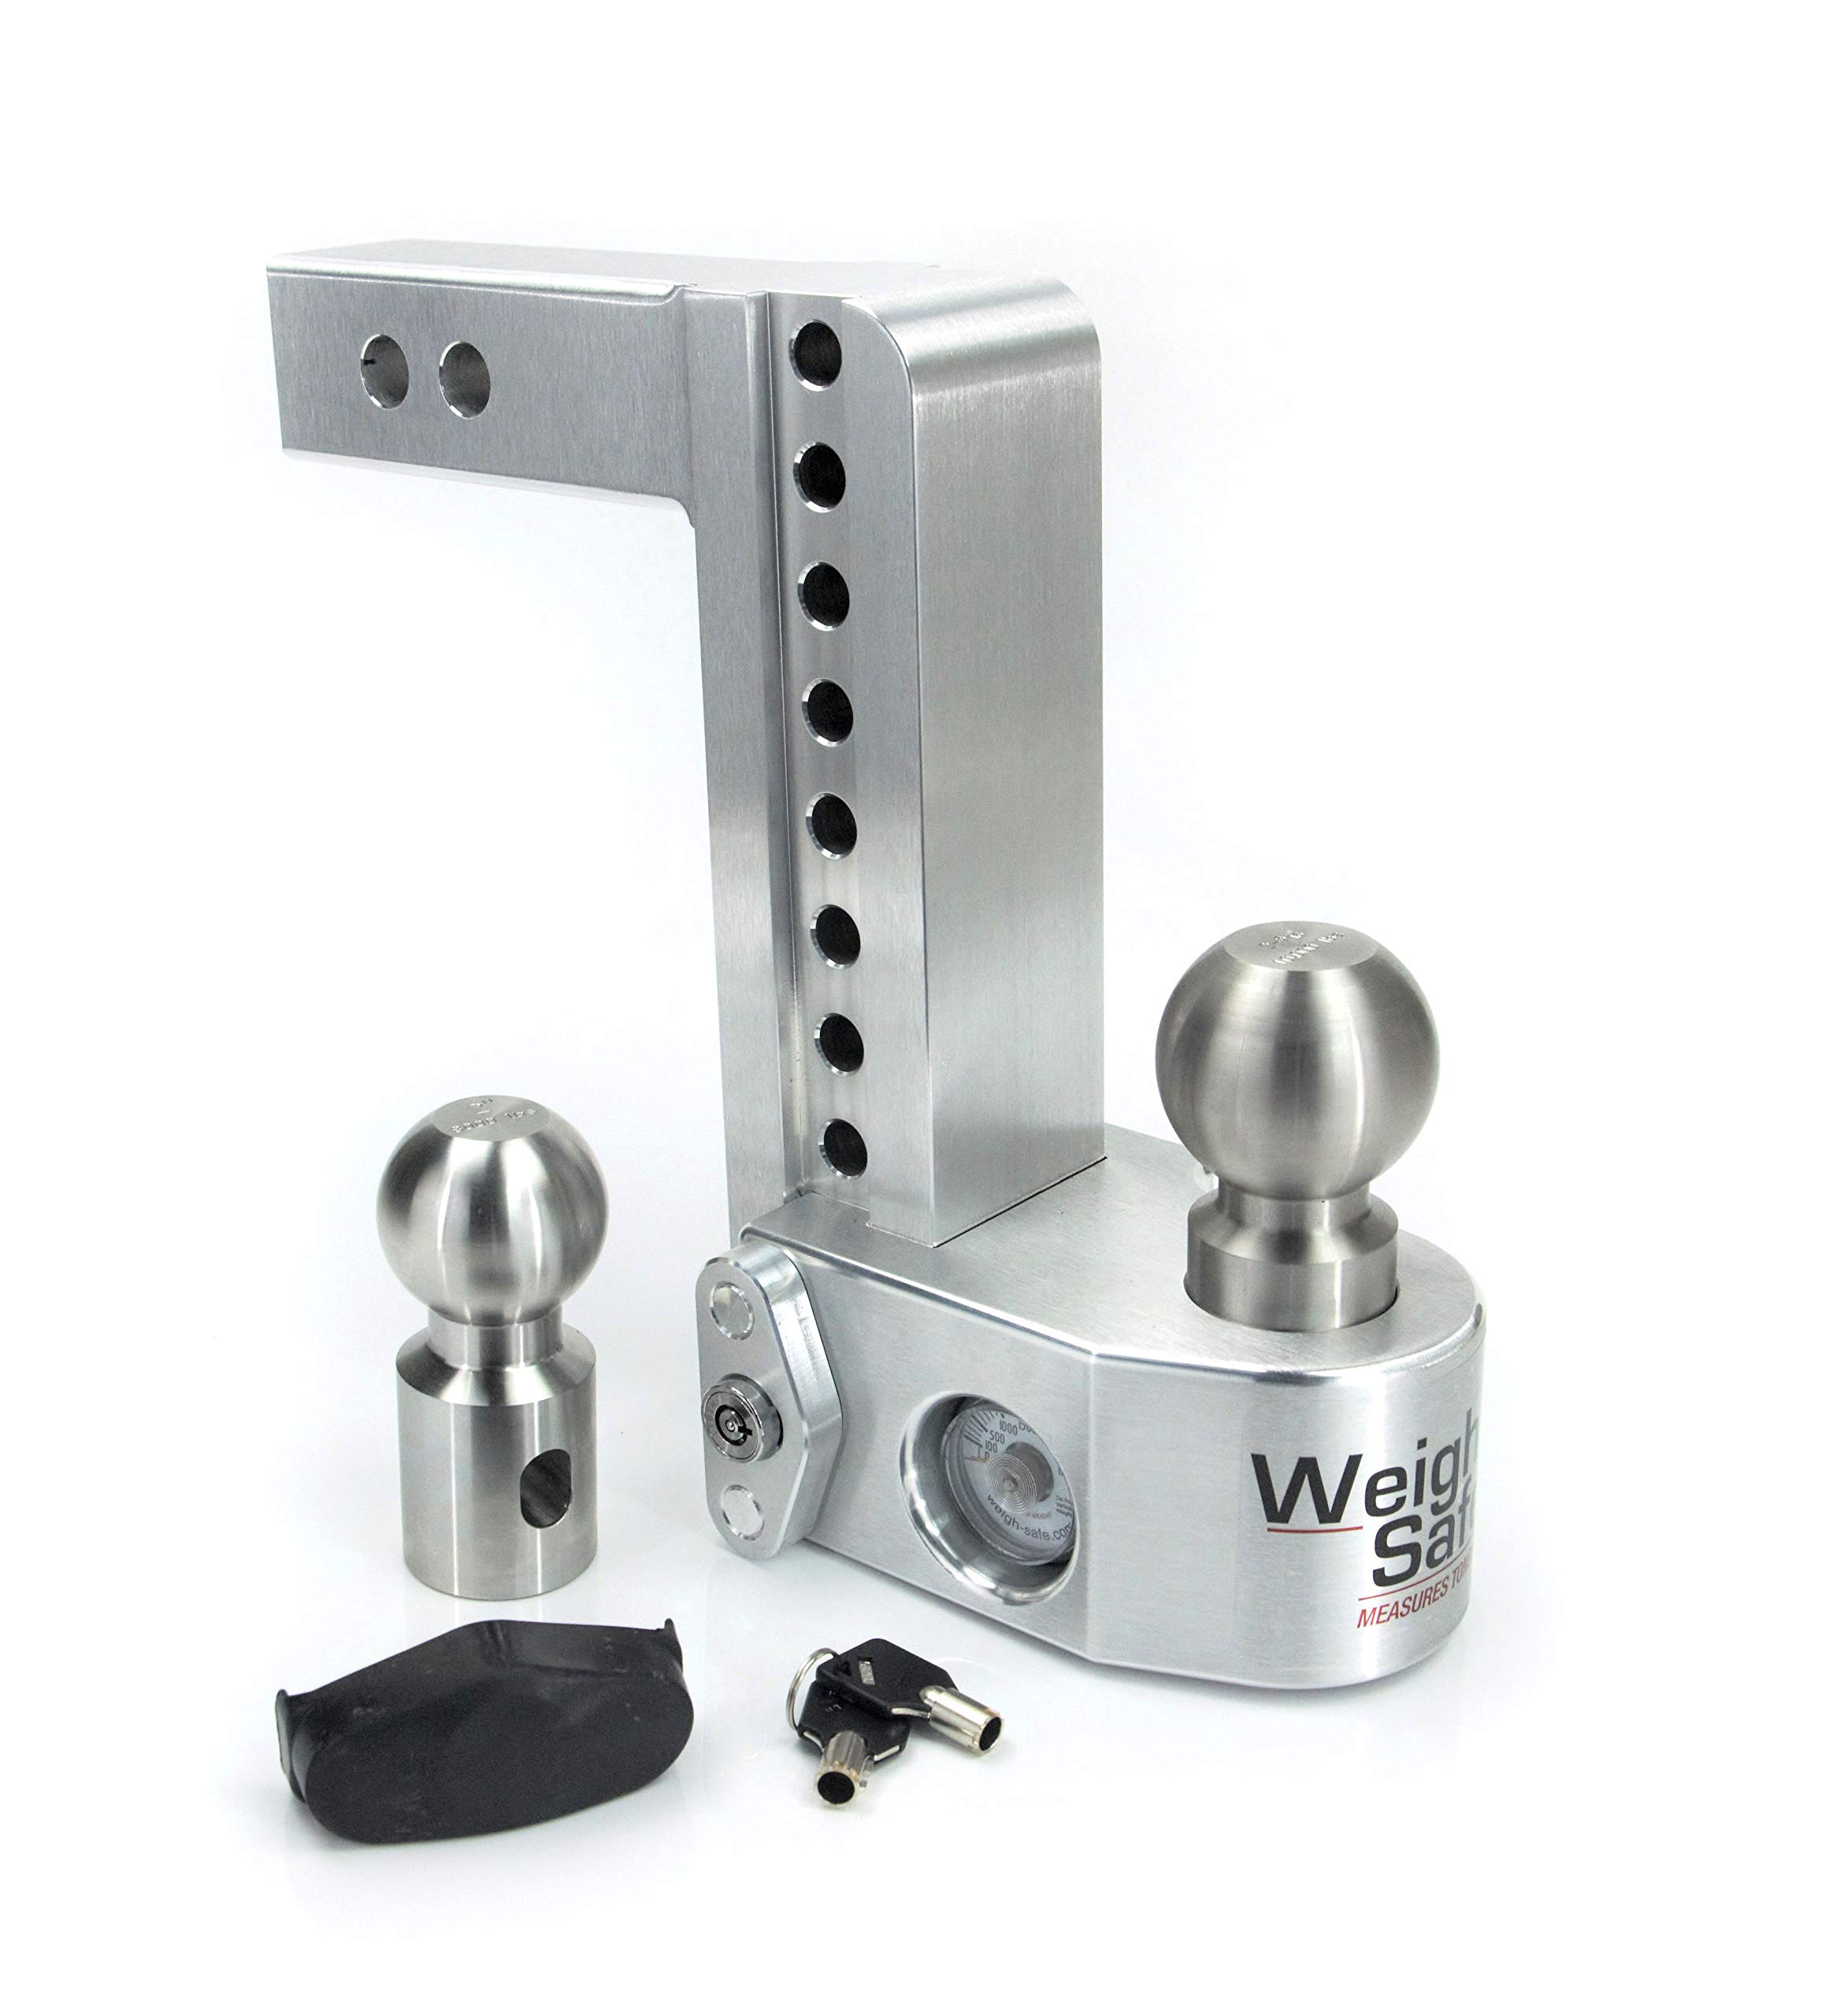 Weigh Safe WS8-2, 8'' Drop Hitch w/ 2'' Shank/Shaft, Adjustable Aluminum Trailer Hitch & Ball Mount w/ Built-in Scale, 2 Stainless Steel Balls (2'' & 2-5/16'') and a Double-pin Key Lock by Weigh Safe